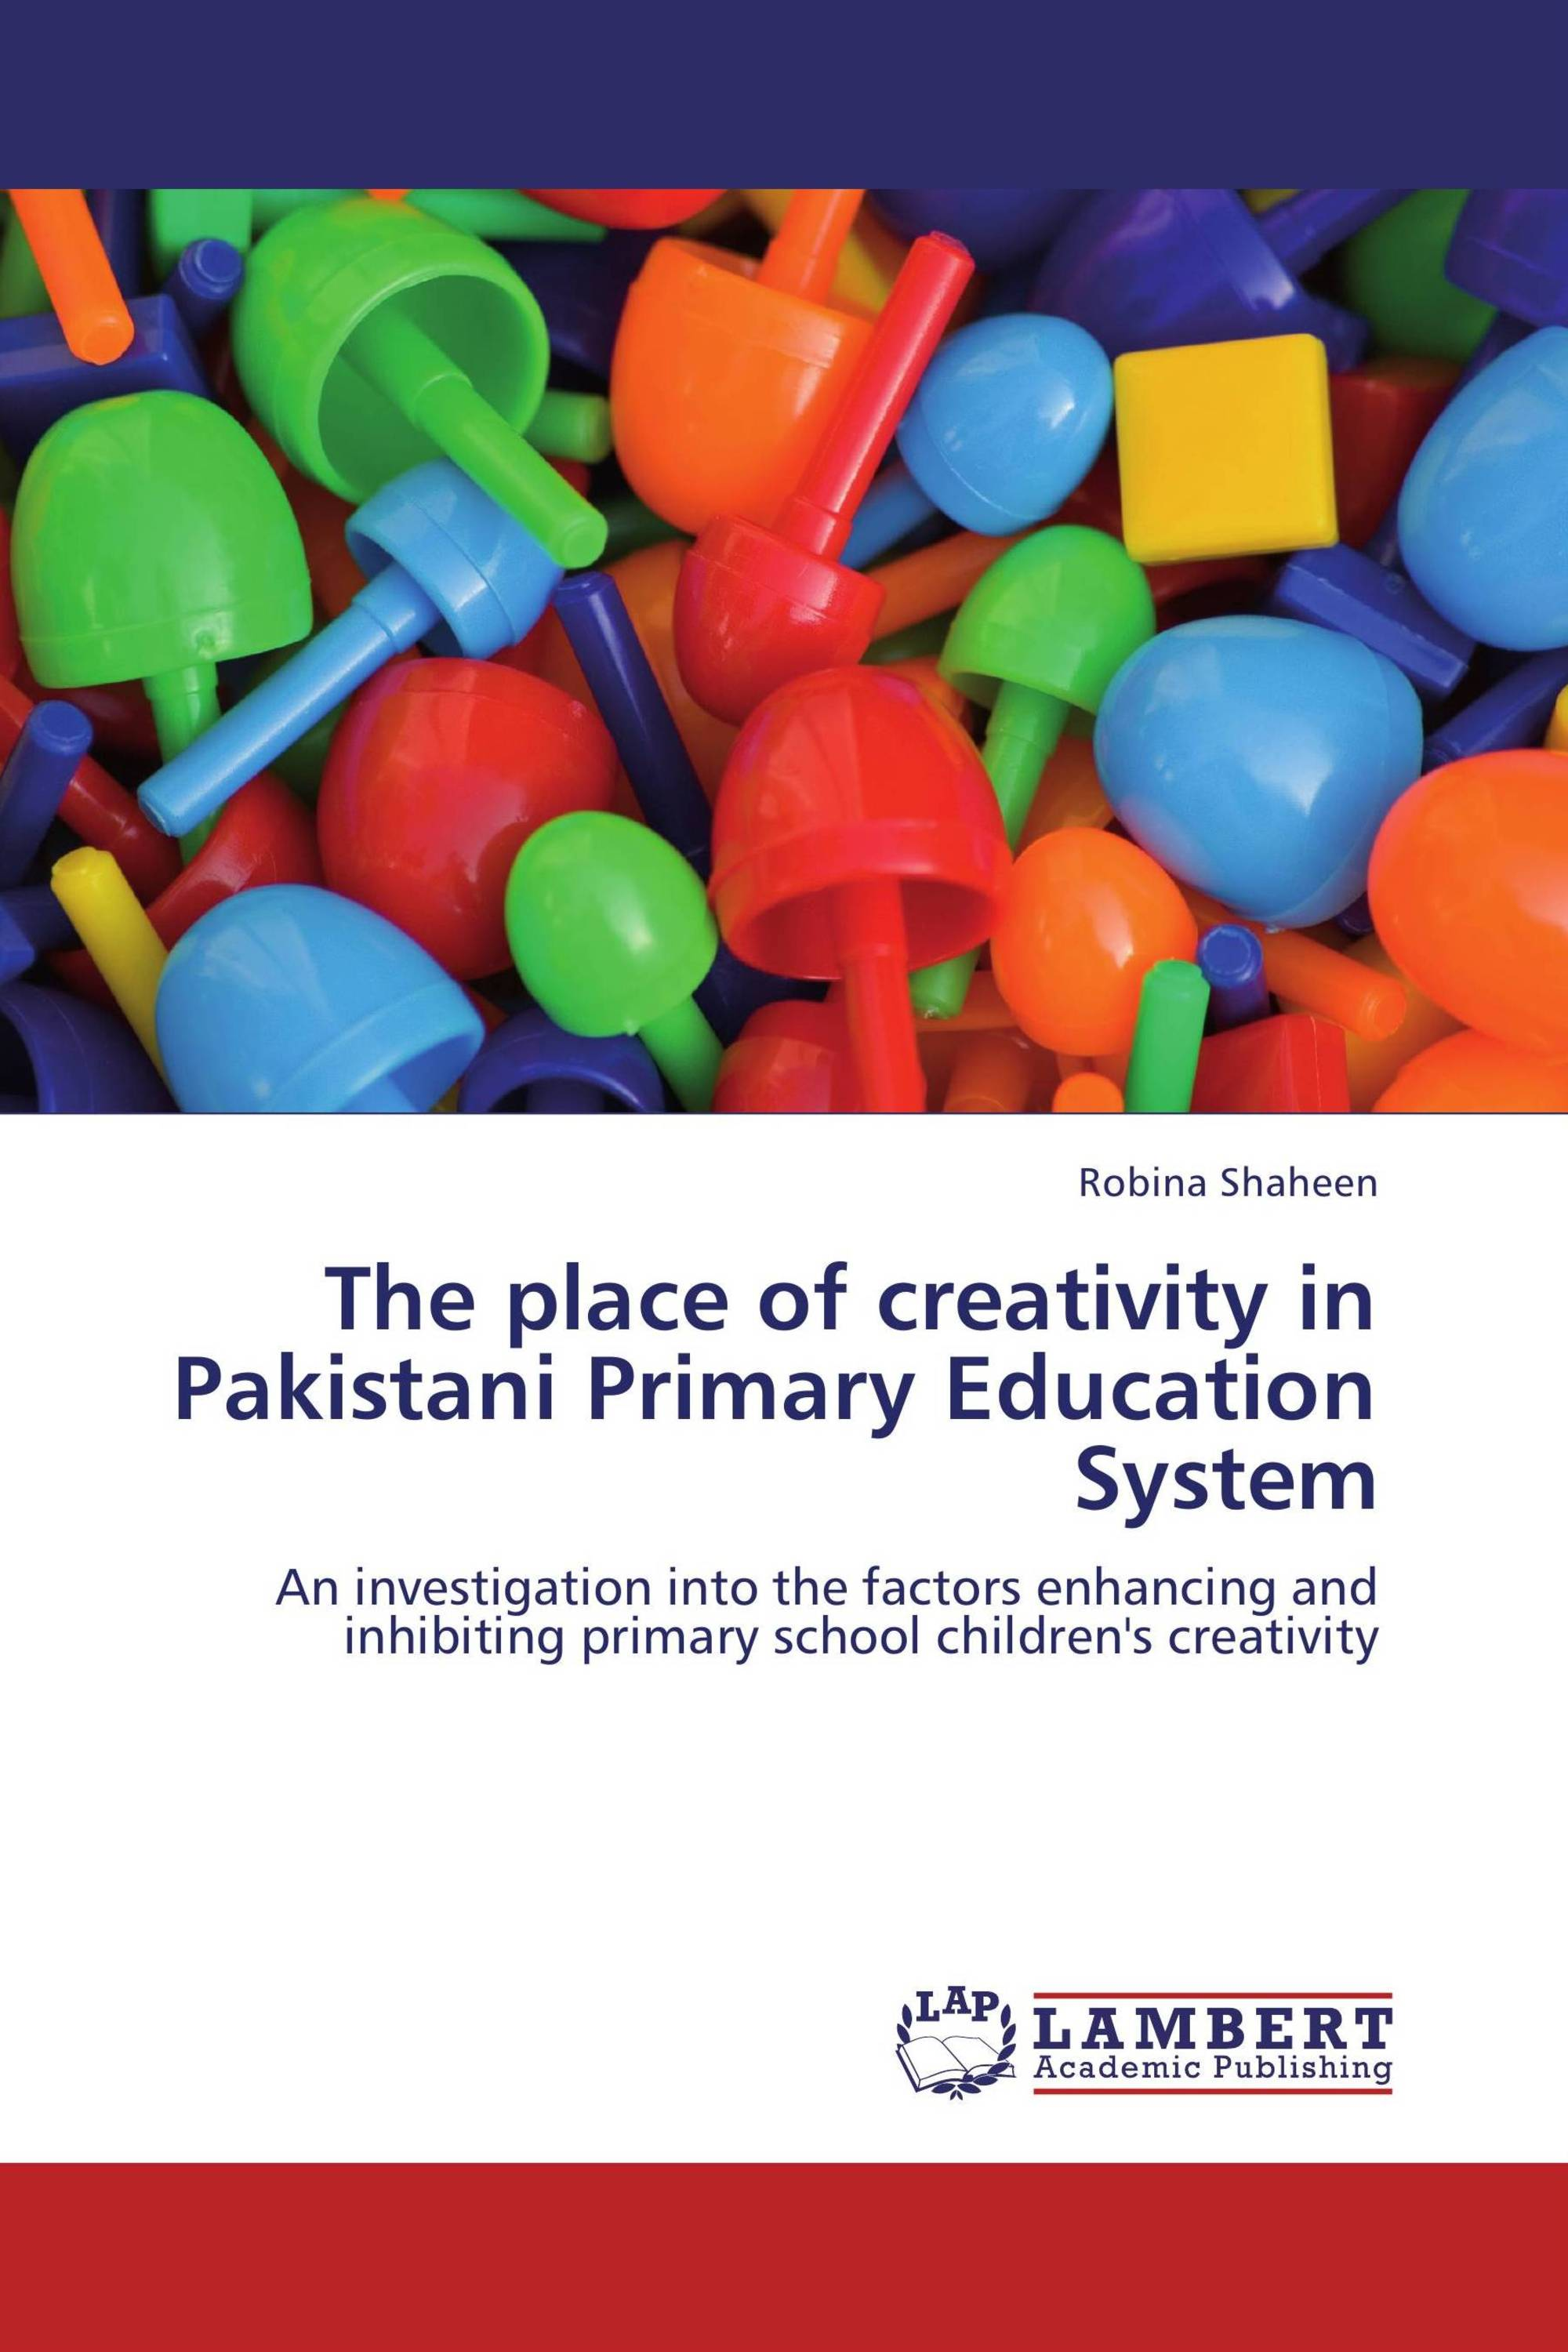 The place of creativity in Pakistani Primary Education System